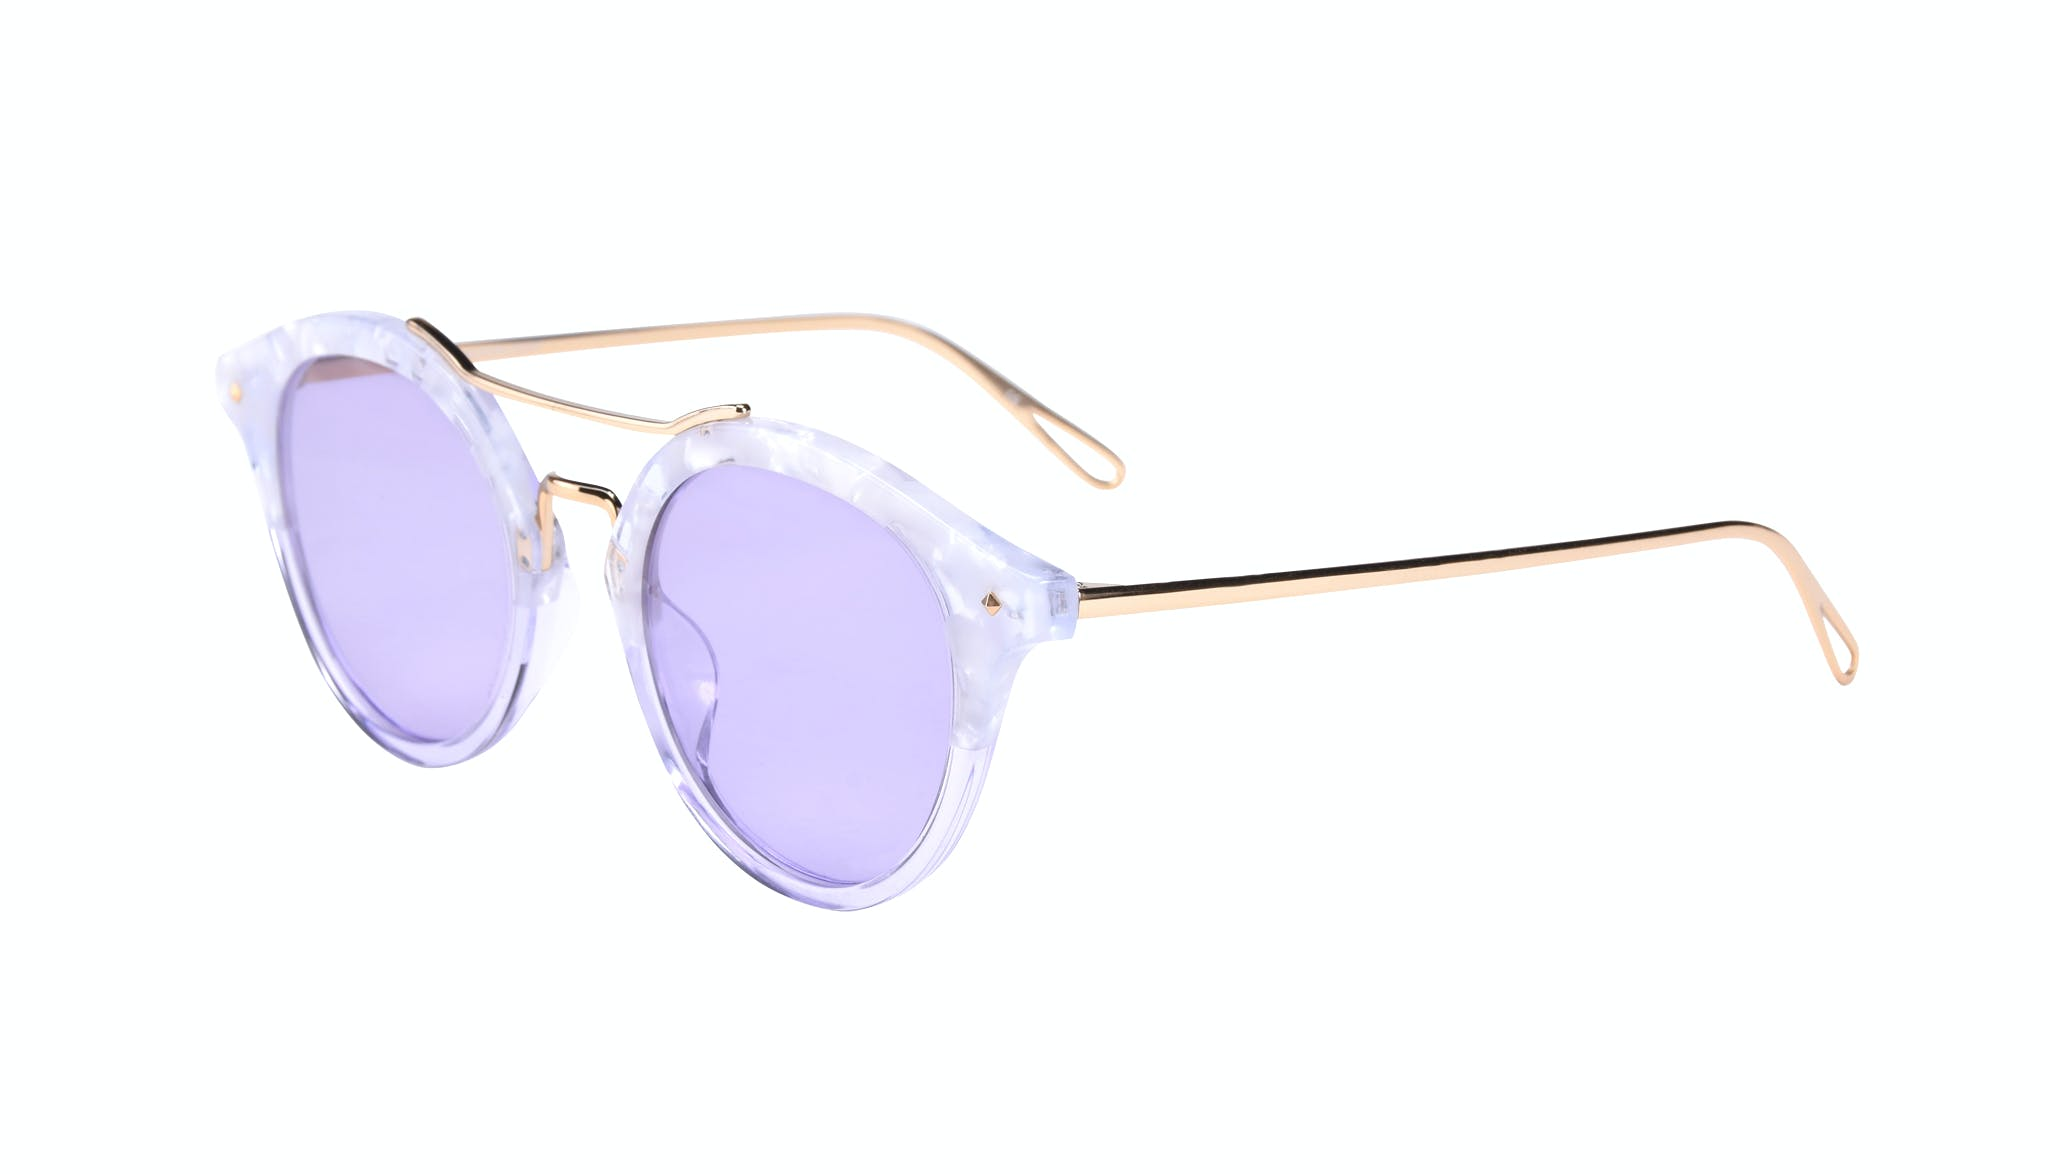 Affordable Fashion Glasses Round Sunglasses Women Infinite Moonlight Tilt